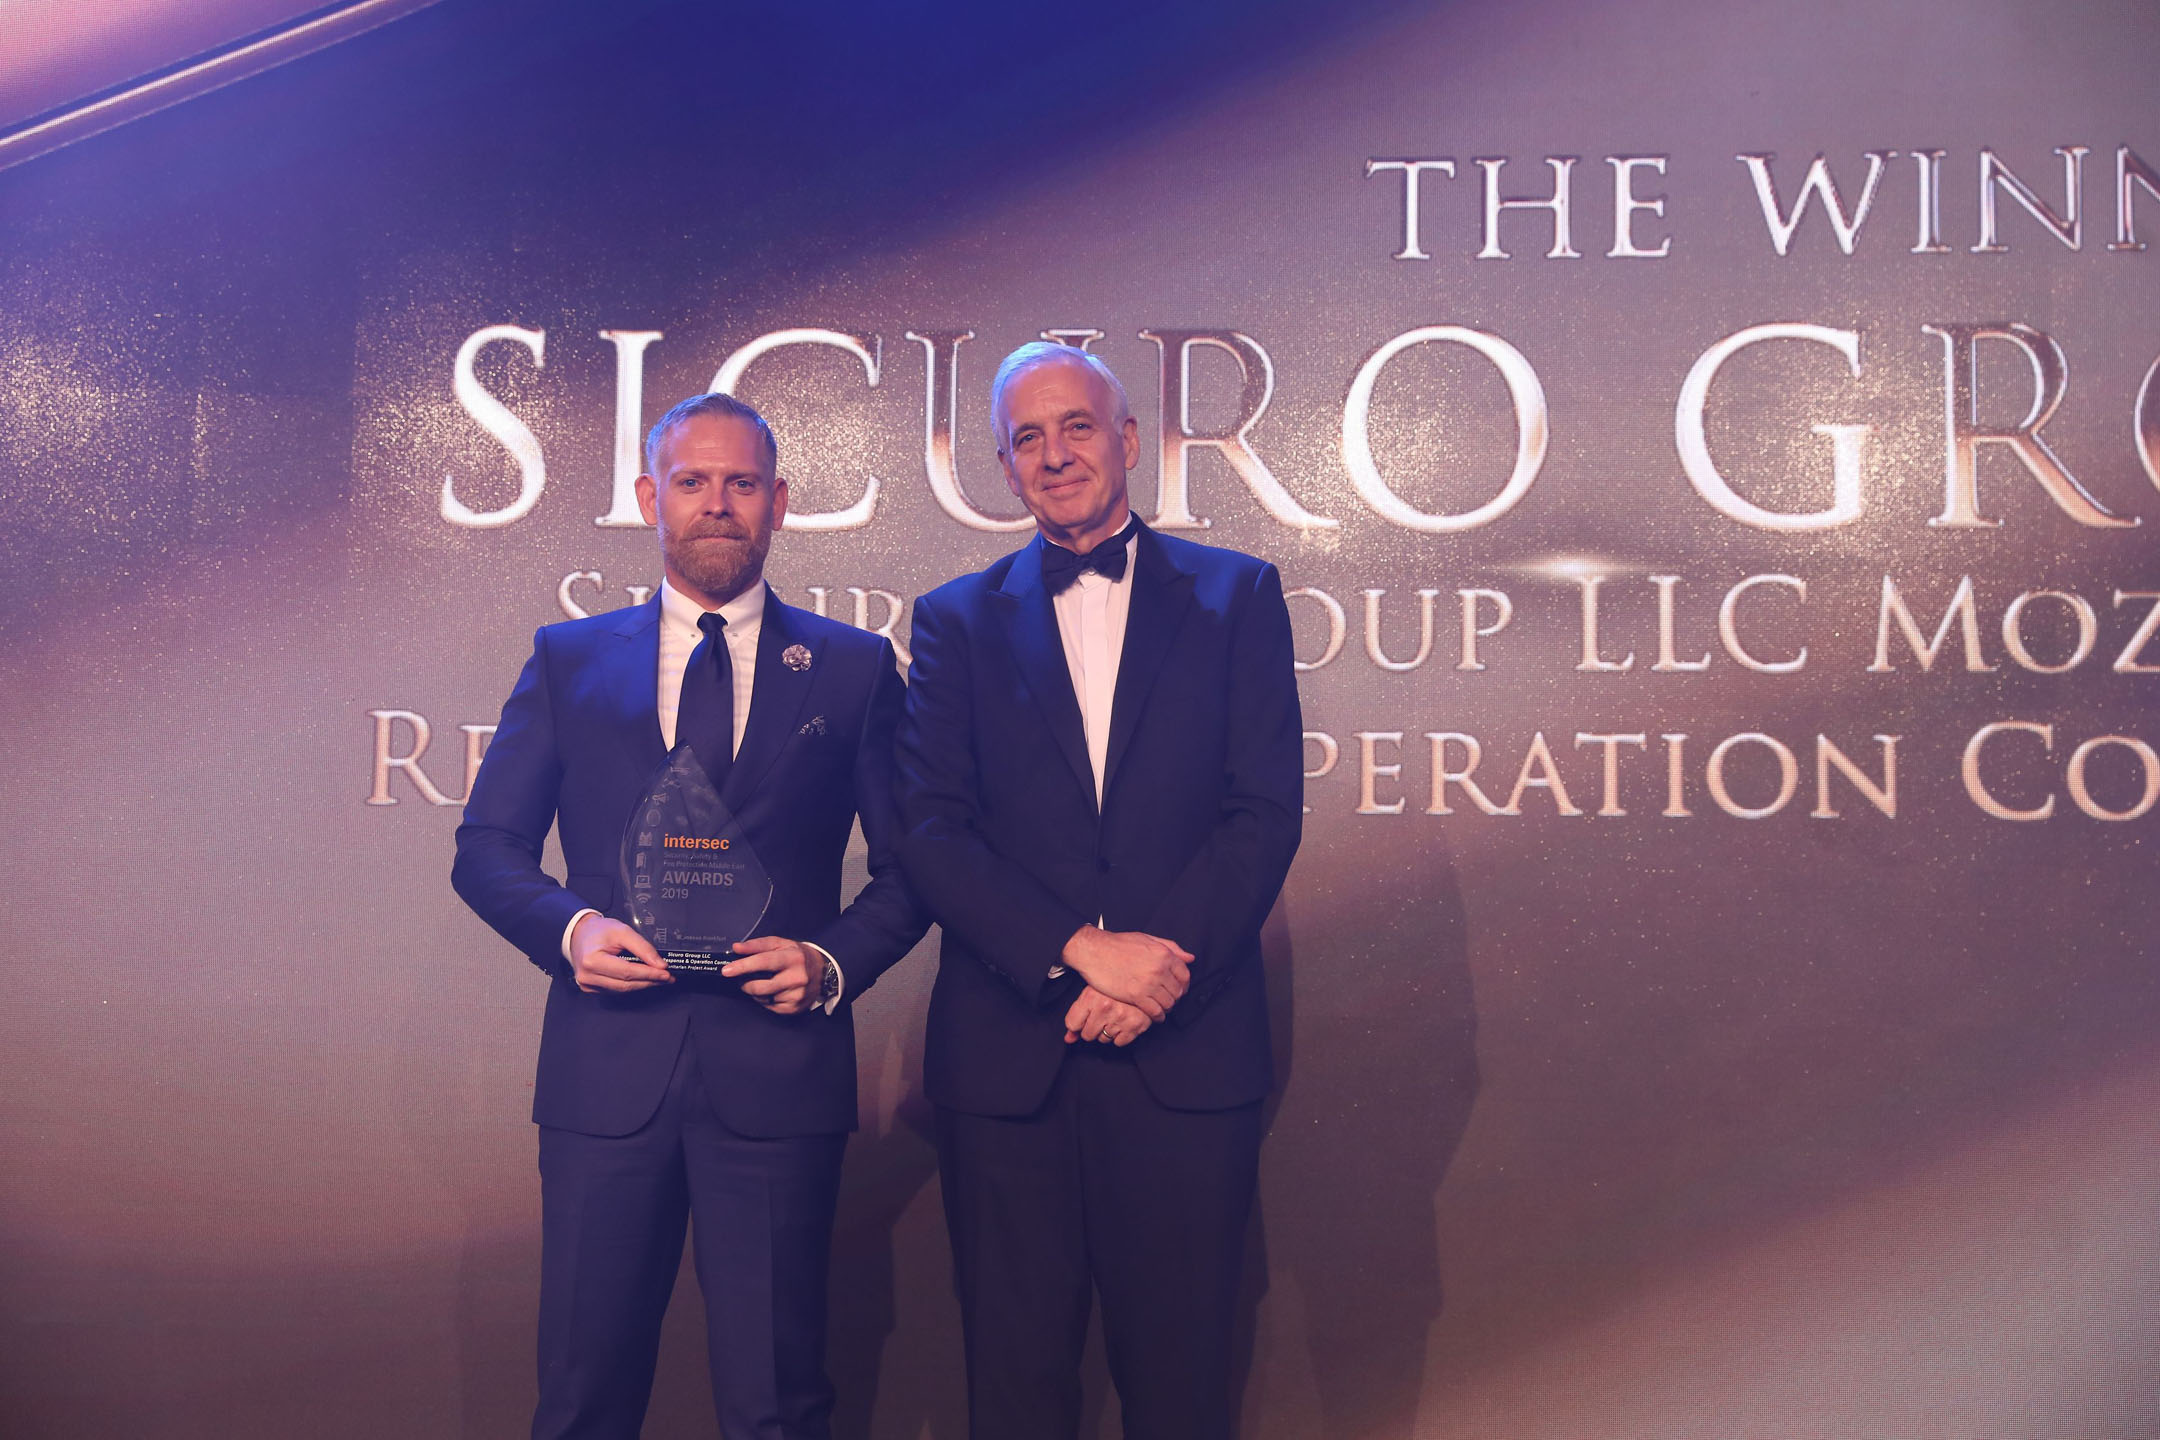 Sicuro for Humanitarian Project of the Year